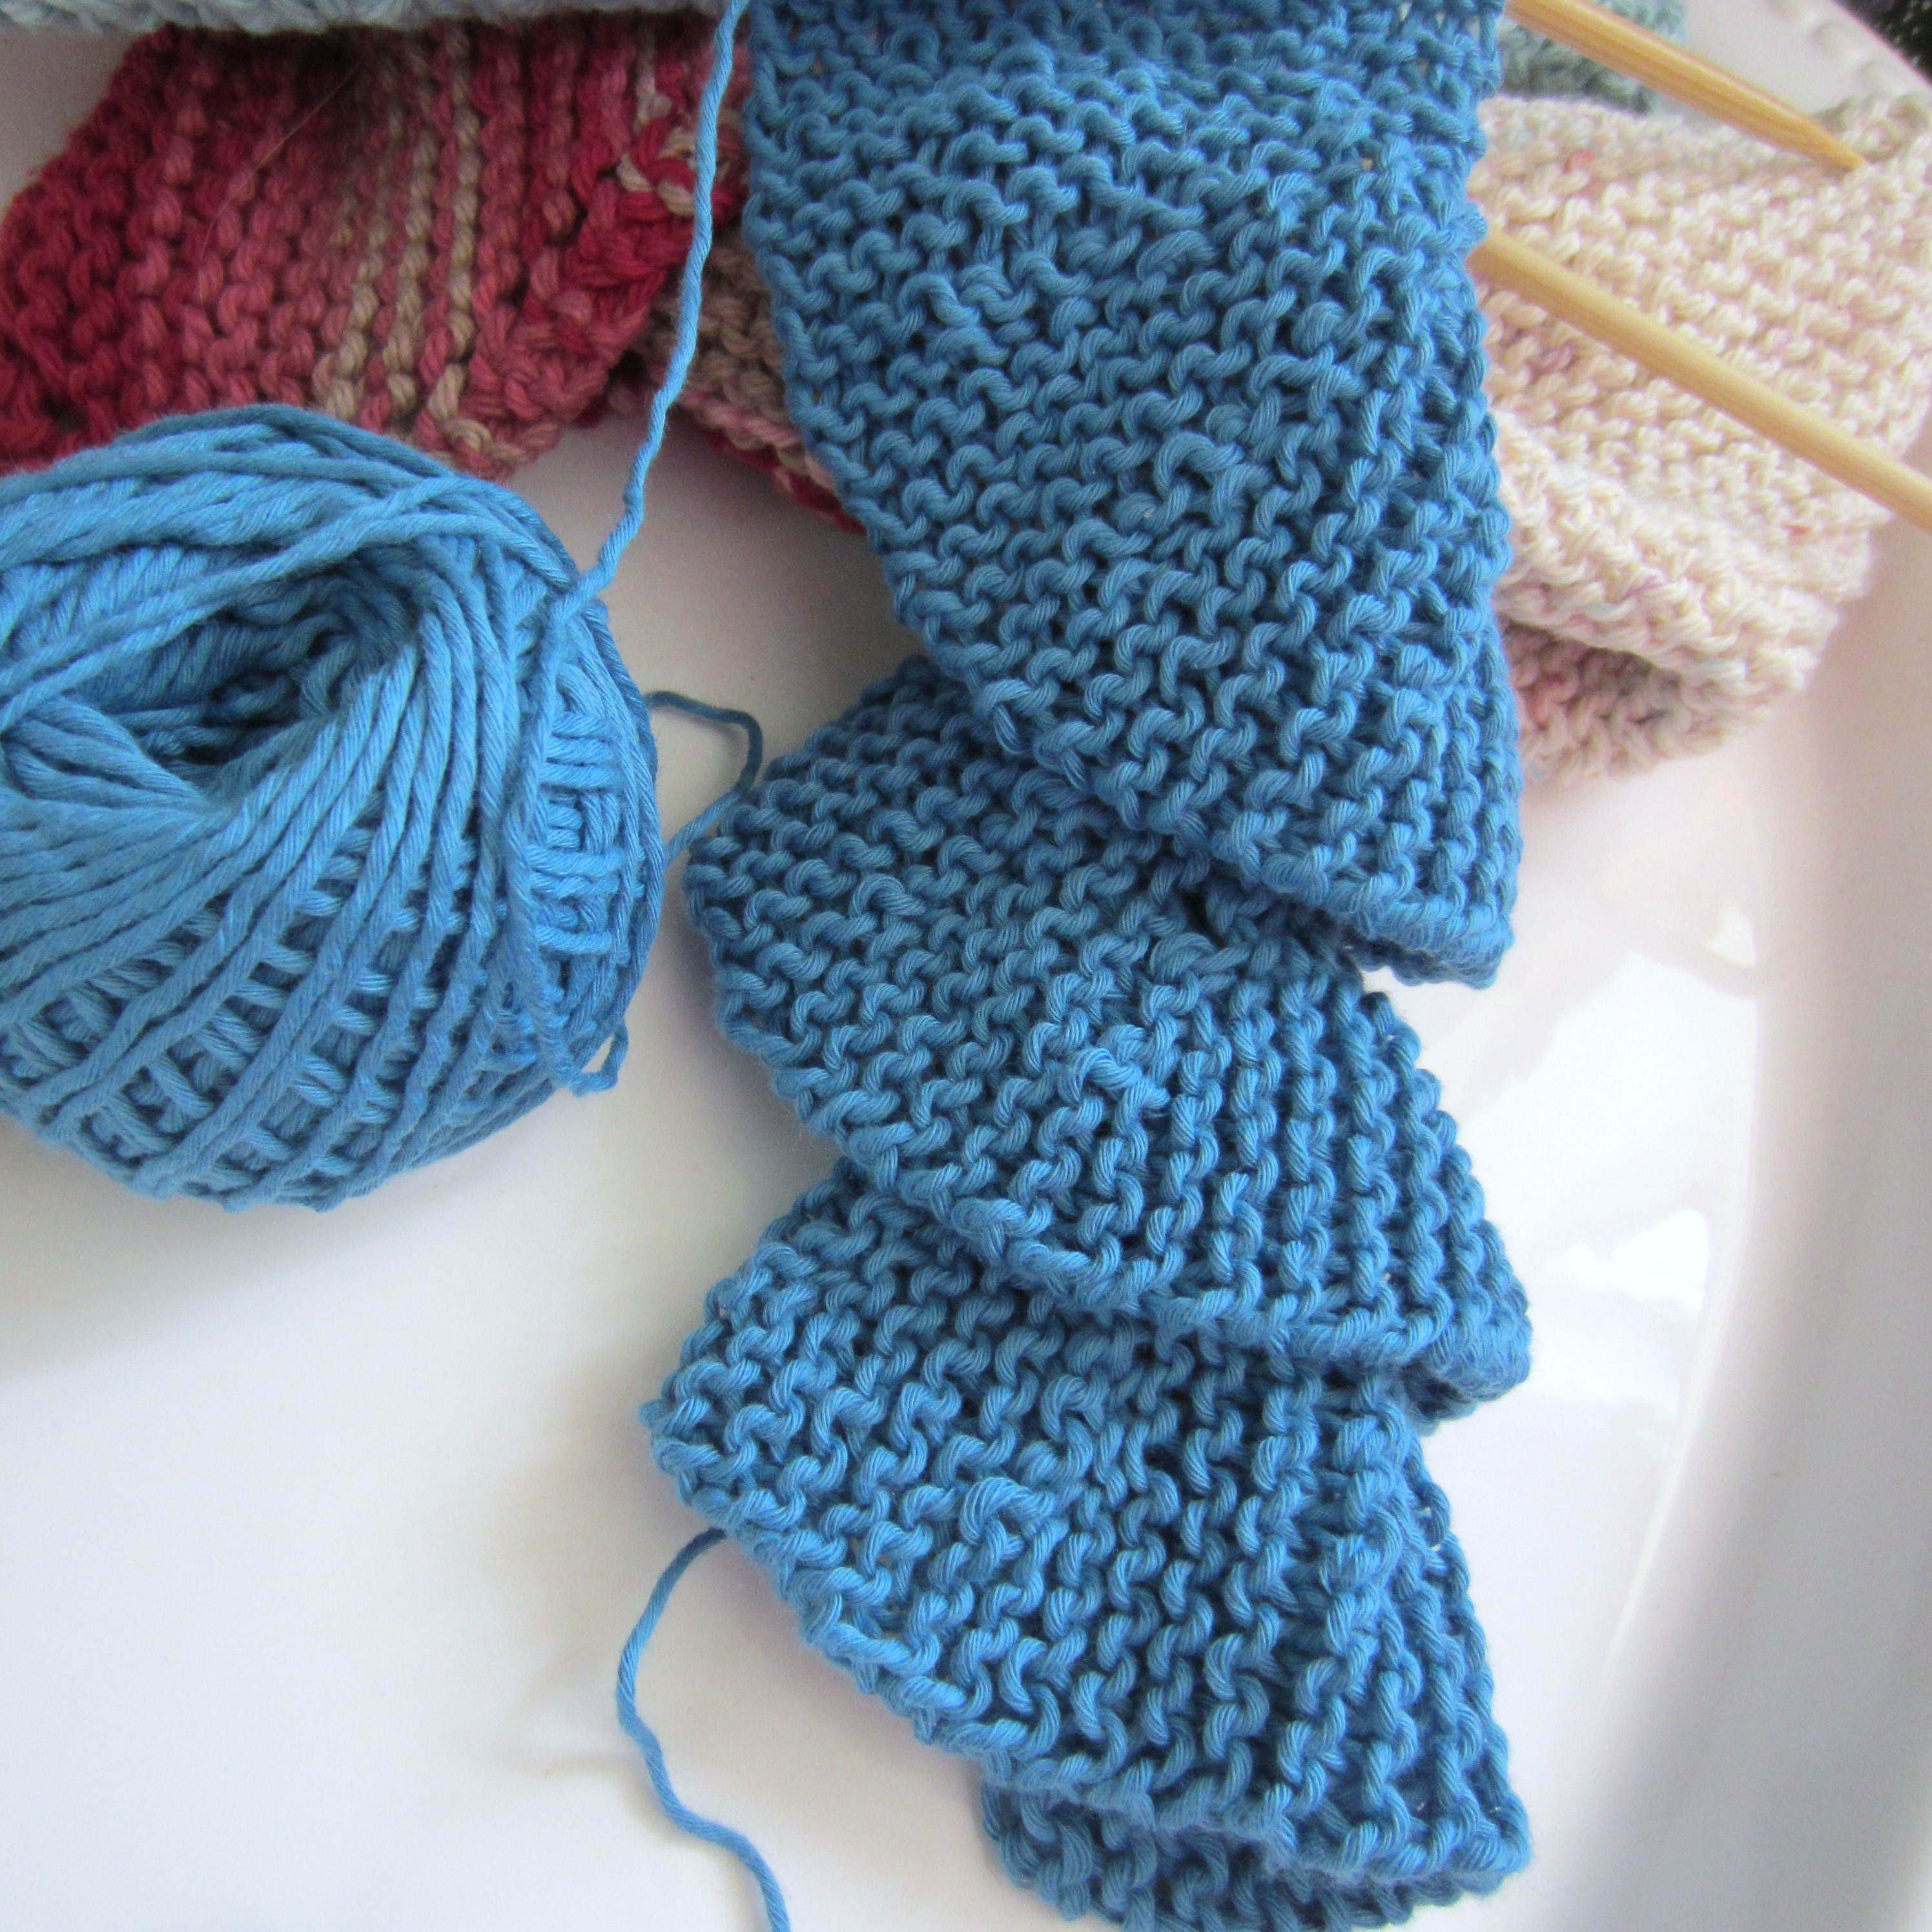 Scarf Knitting Patterns Awesome Trying My Hand at Short Row Knitting Spiral Scarf Of Wonderful 41 Pictures Scarf Knitting Patterns